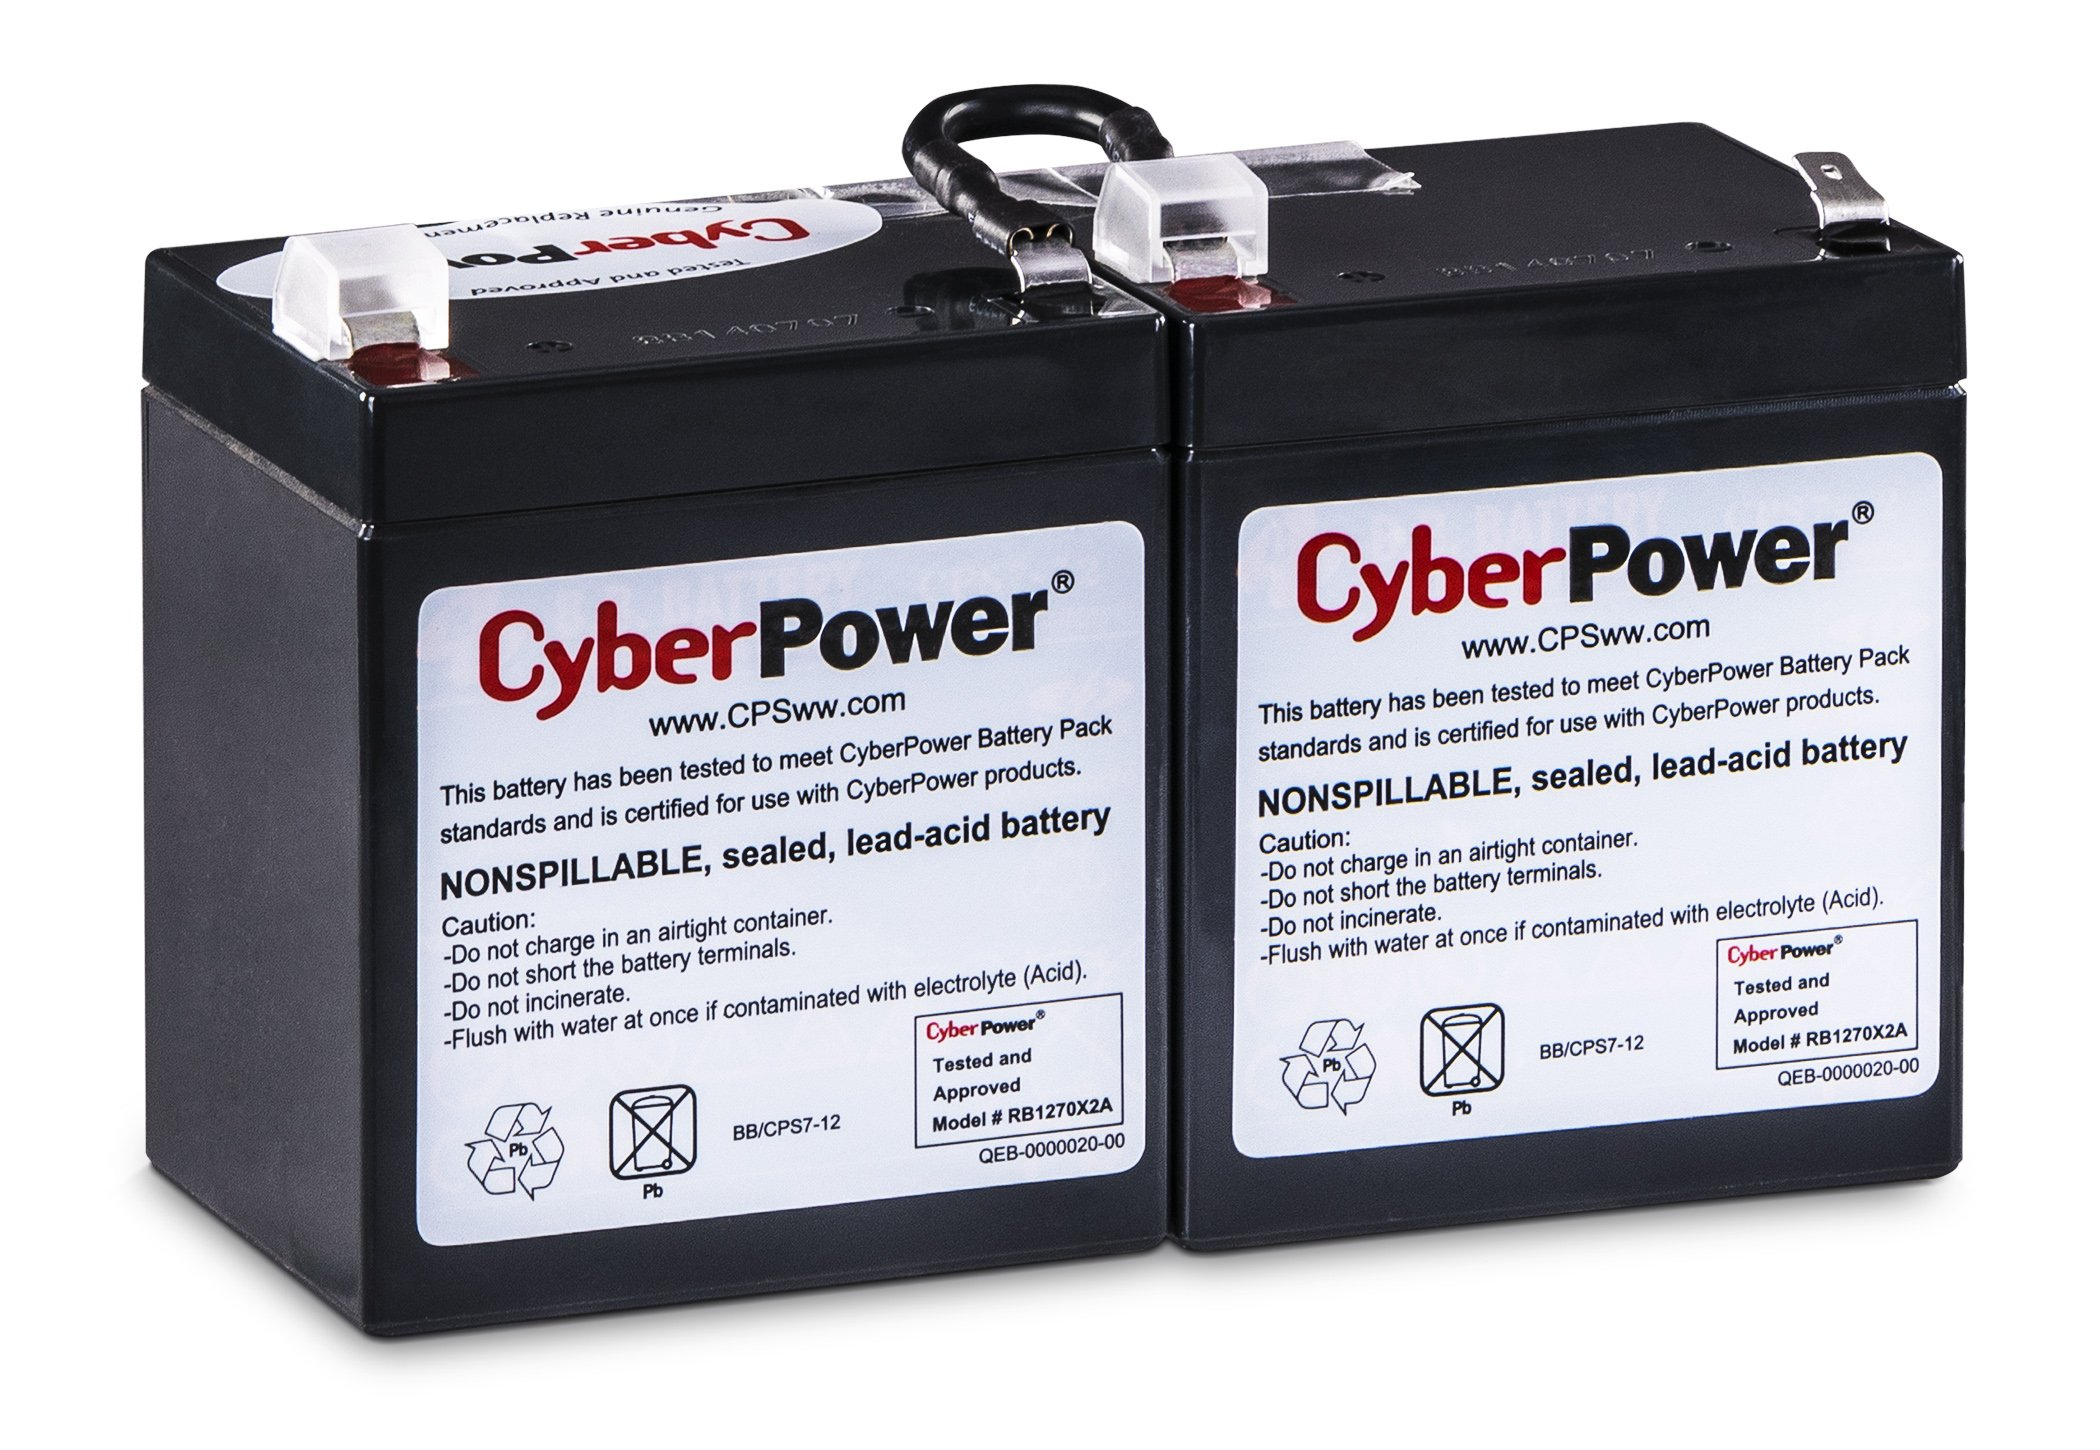 CyberPower RB1270X2A Replacement Battery Cartridge, Maintenance-Free, User Installable by CyberPower